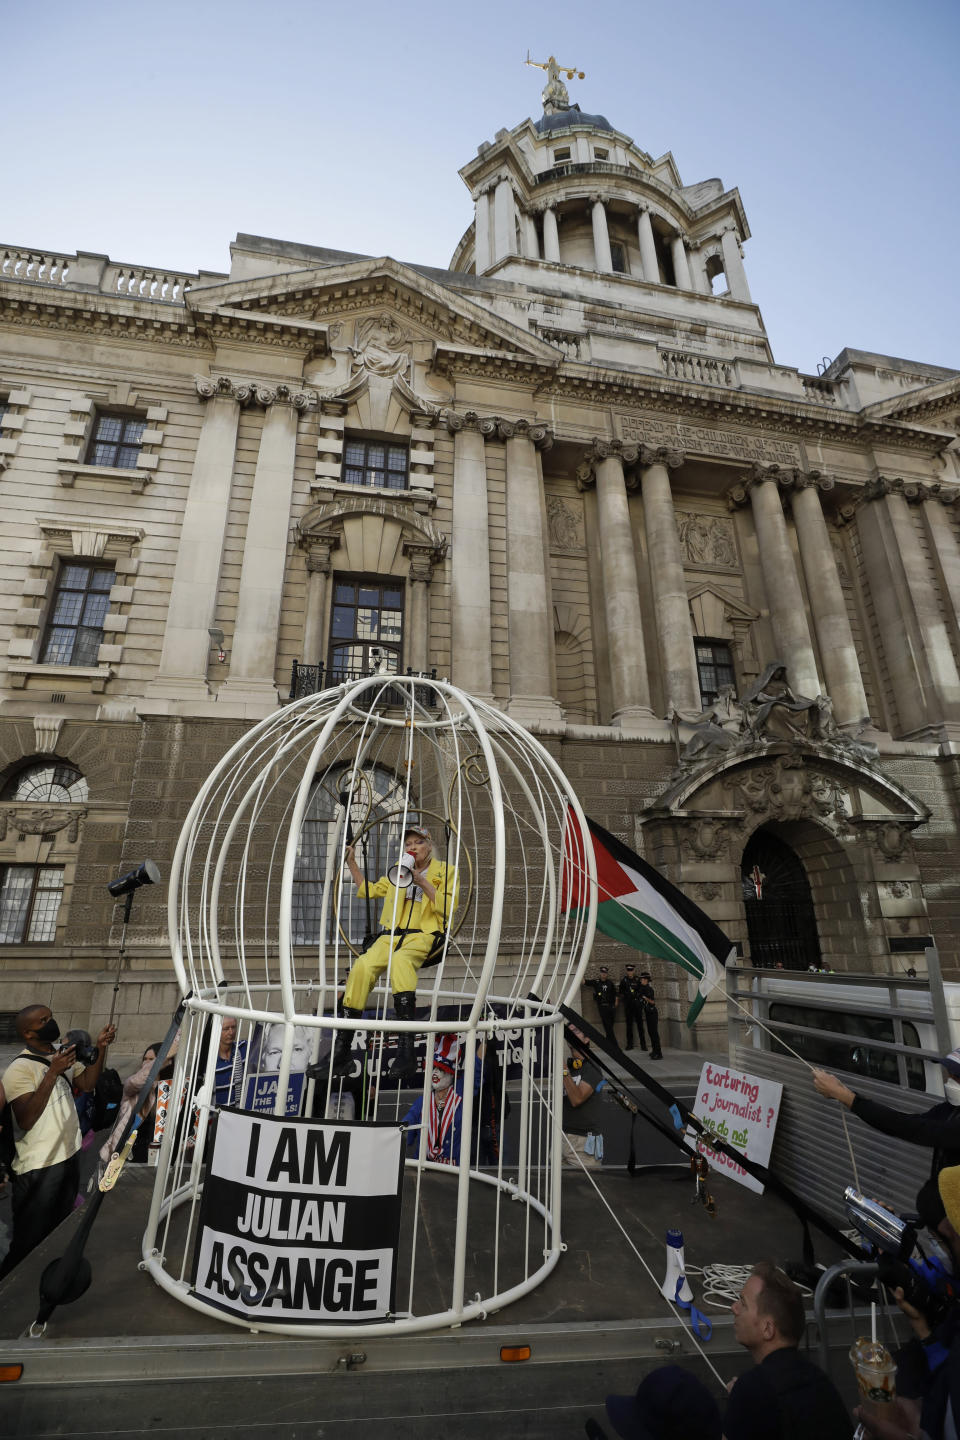 Fashion designer Vivienne Westwood sits suspended in a giant bird cage in protest against the extradition of WikiLeaks founder Julian Assange to the U.S., outside the Old Bailey court, in London, Tuesday, July 21, 2020. Assange is in London's Belmarsh Prison awaiting a full extradition hearing, which has been postponed because of the coronavirus pandemic. Originally due to begin in May, it is now scheduled to start on Sept. 7 at the Old Bailey. (AP Photo/Matt Dunham)